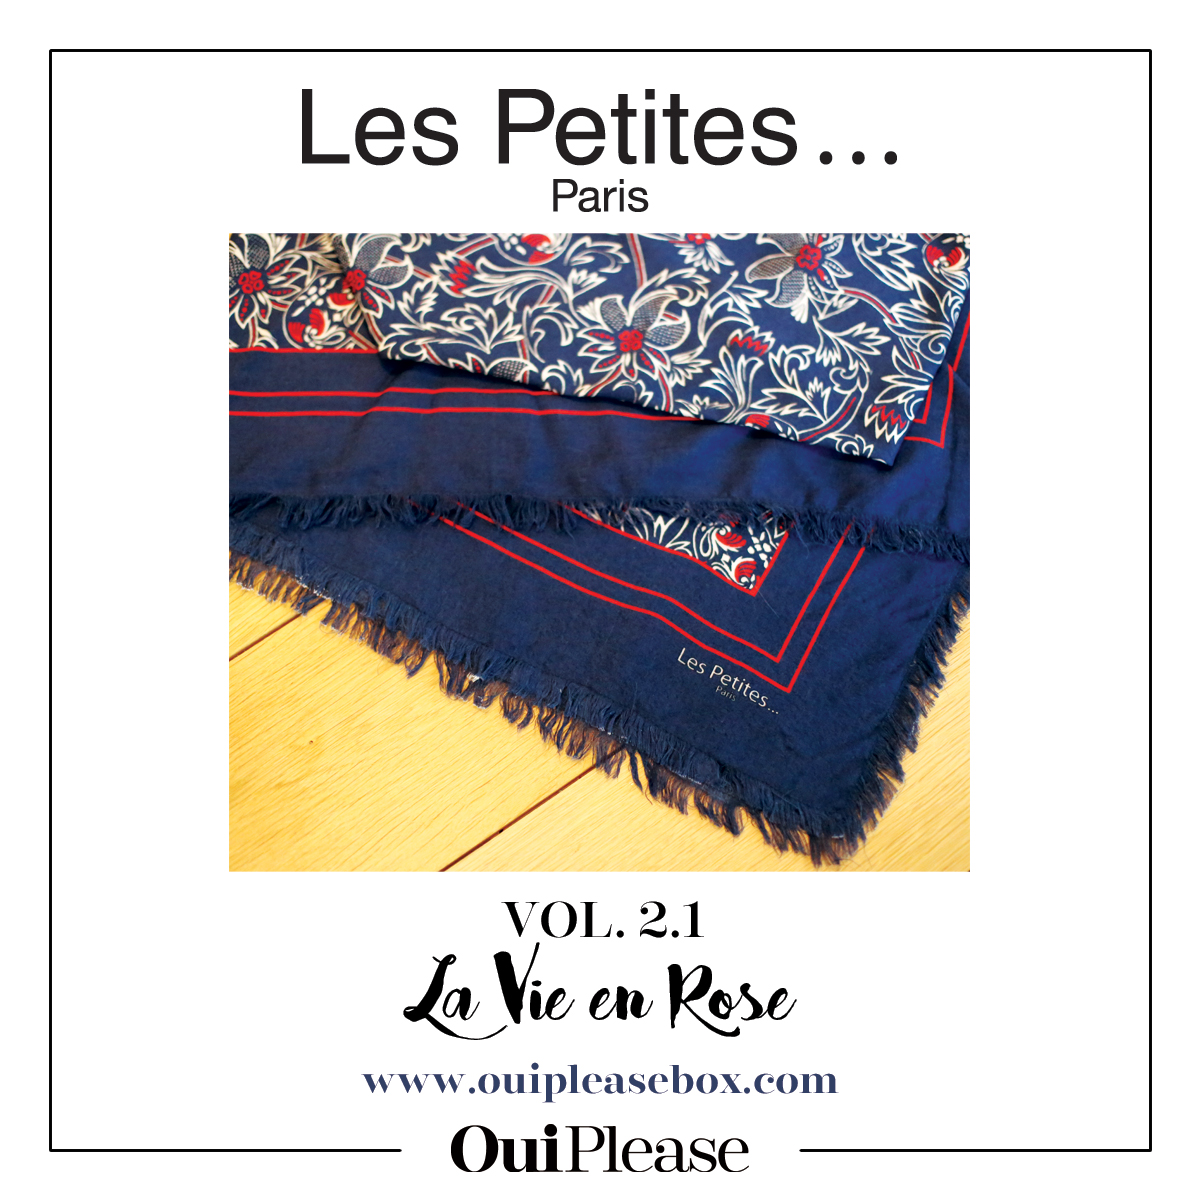 Oui Please Vol. 2.1 Box Spoilers Round 2 + 20% Coupon!